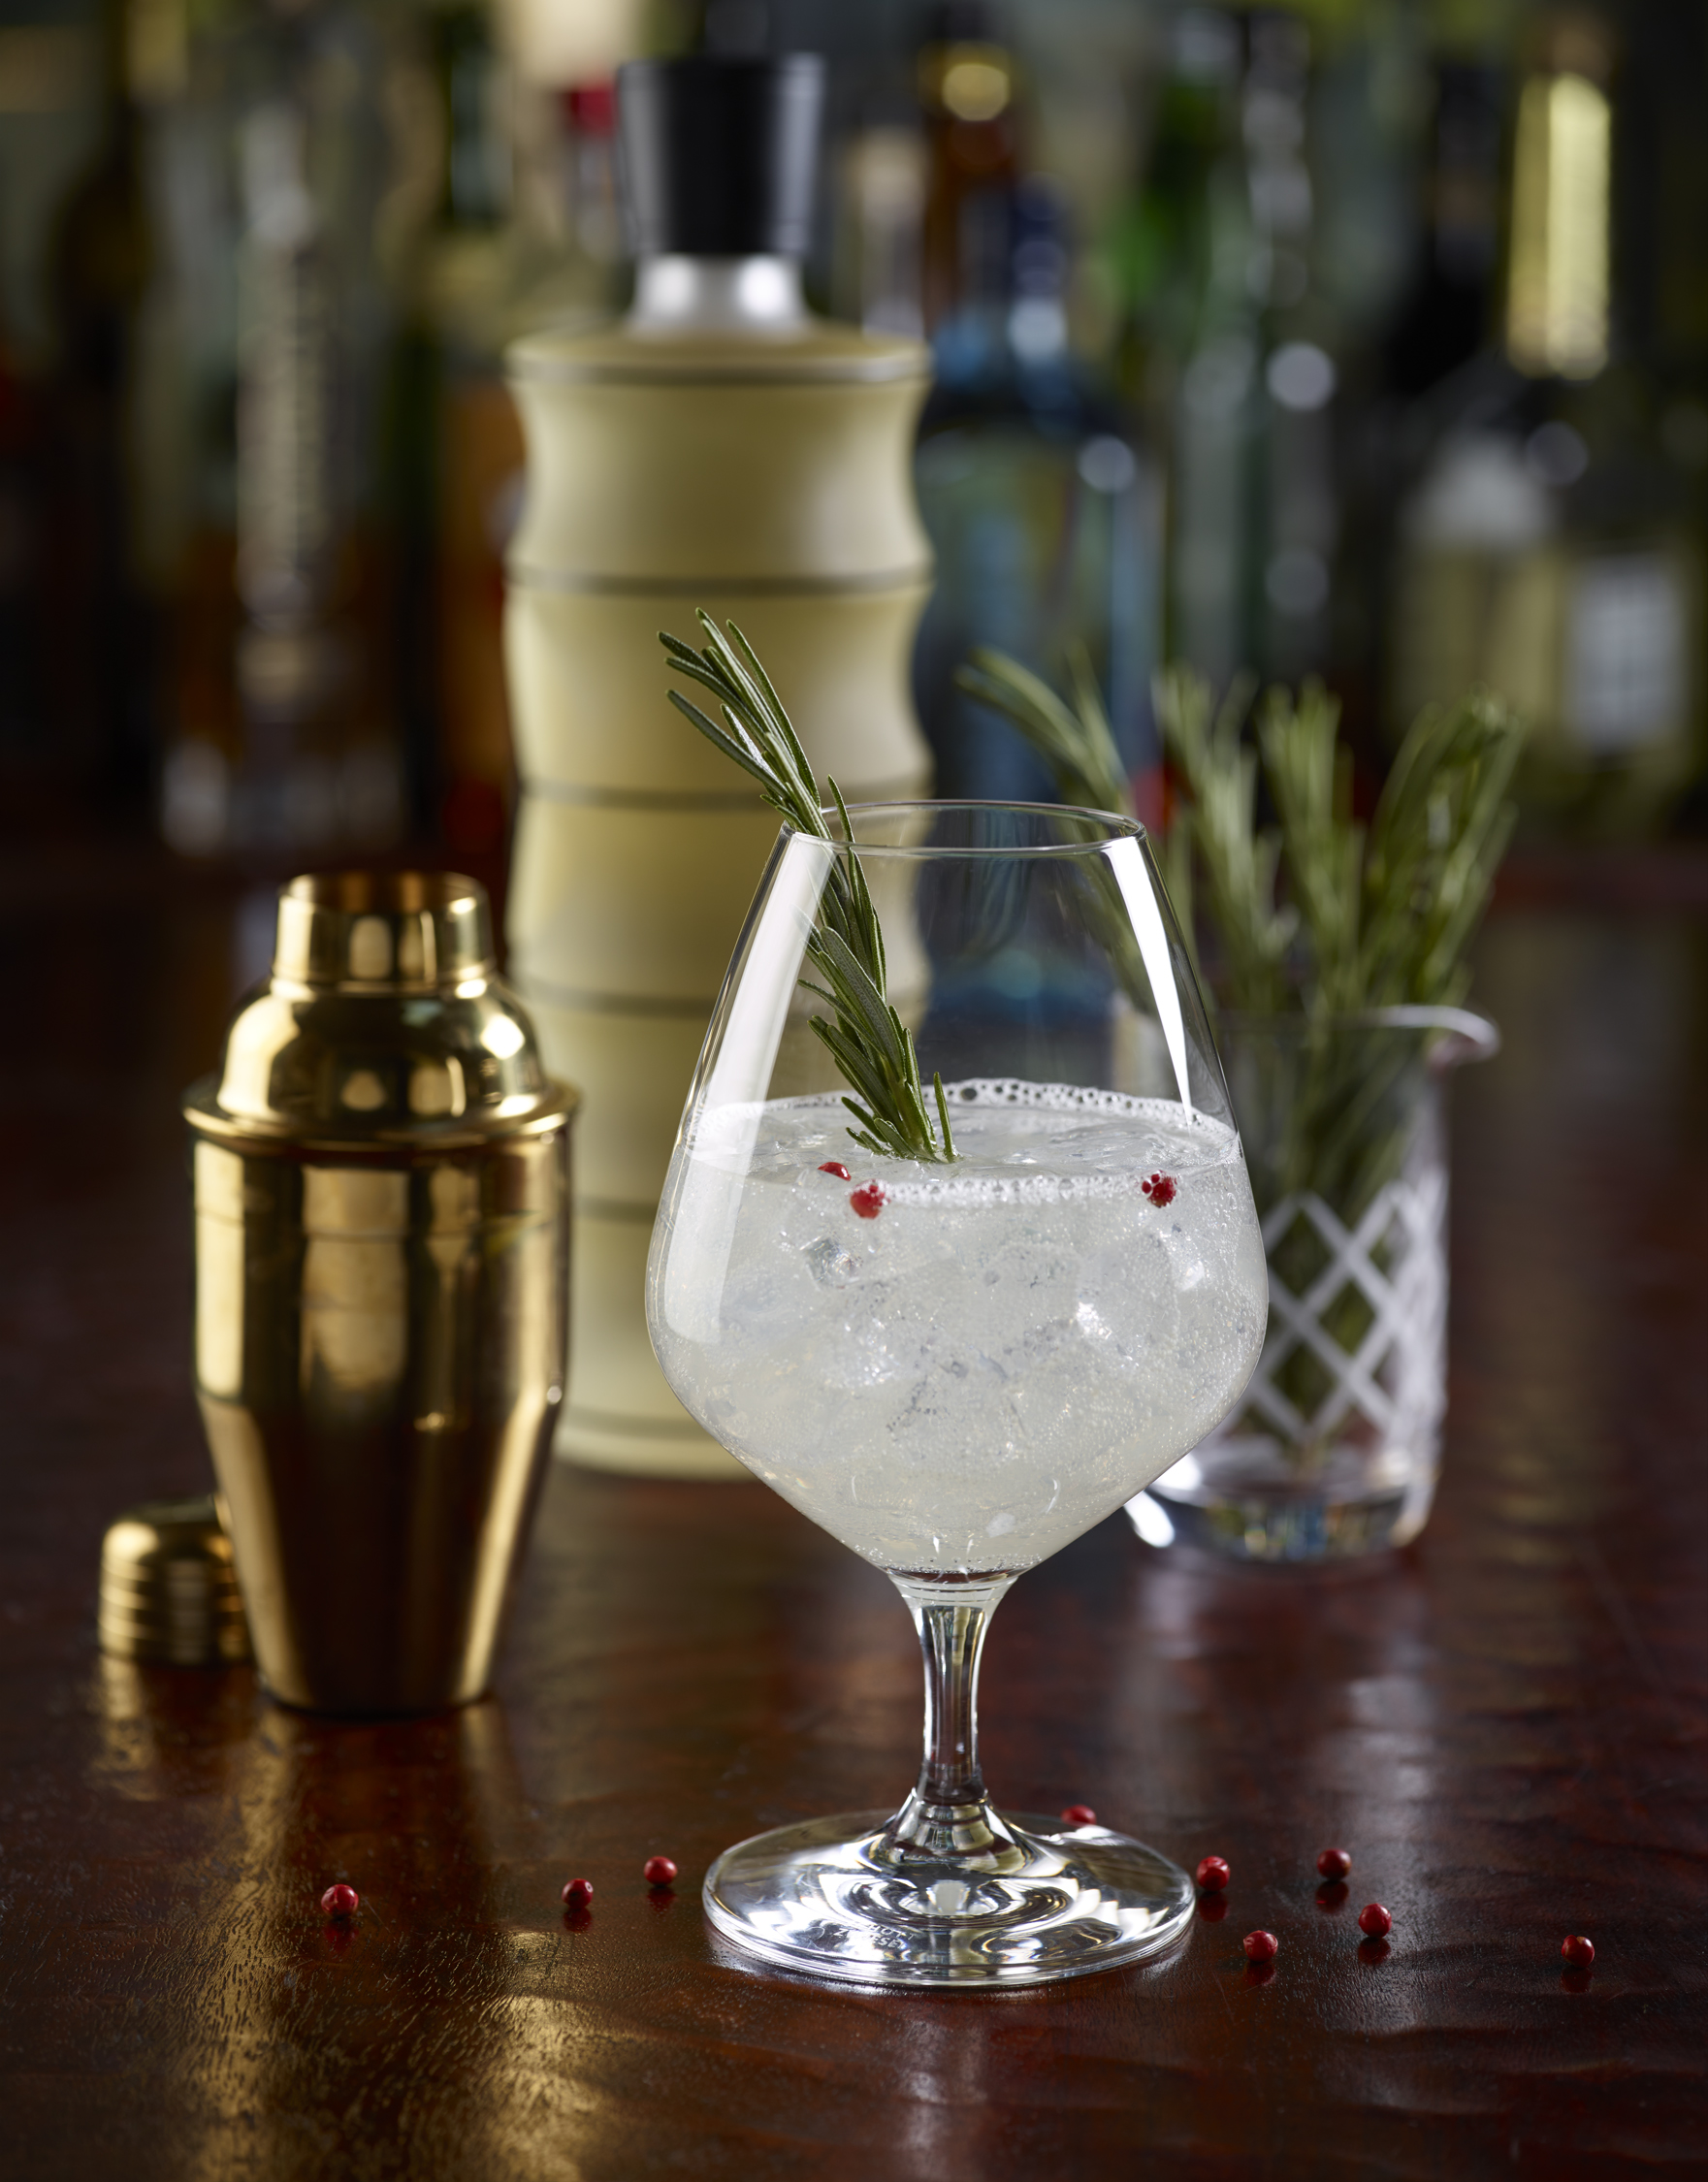 This gin and tonic -- with rosemary and a bit of ginger liqueur -- will take you back to yesteryear at Ruth's Chris' 50th anniversary cocktail dinner.